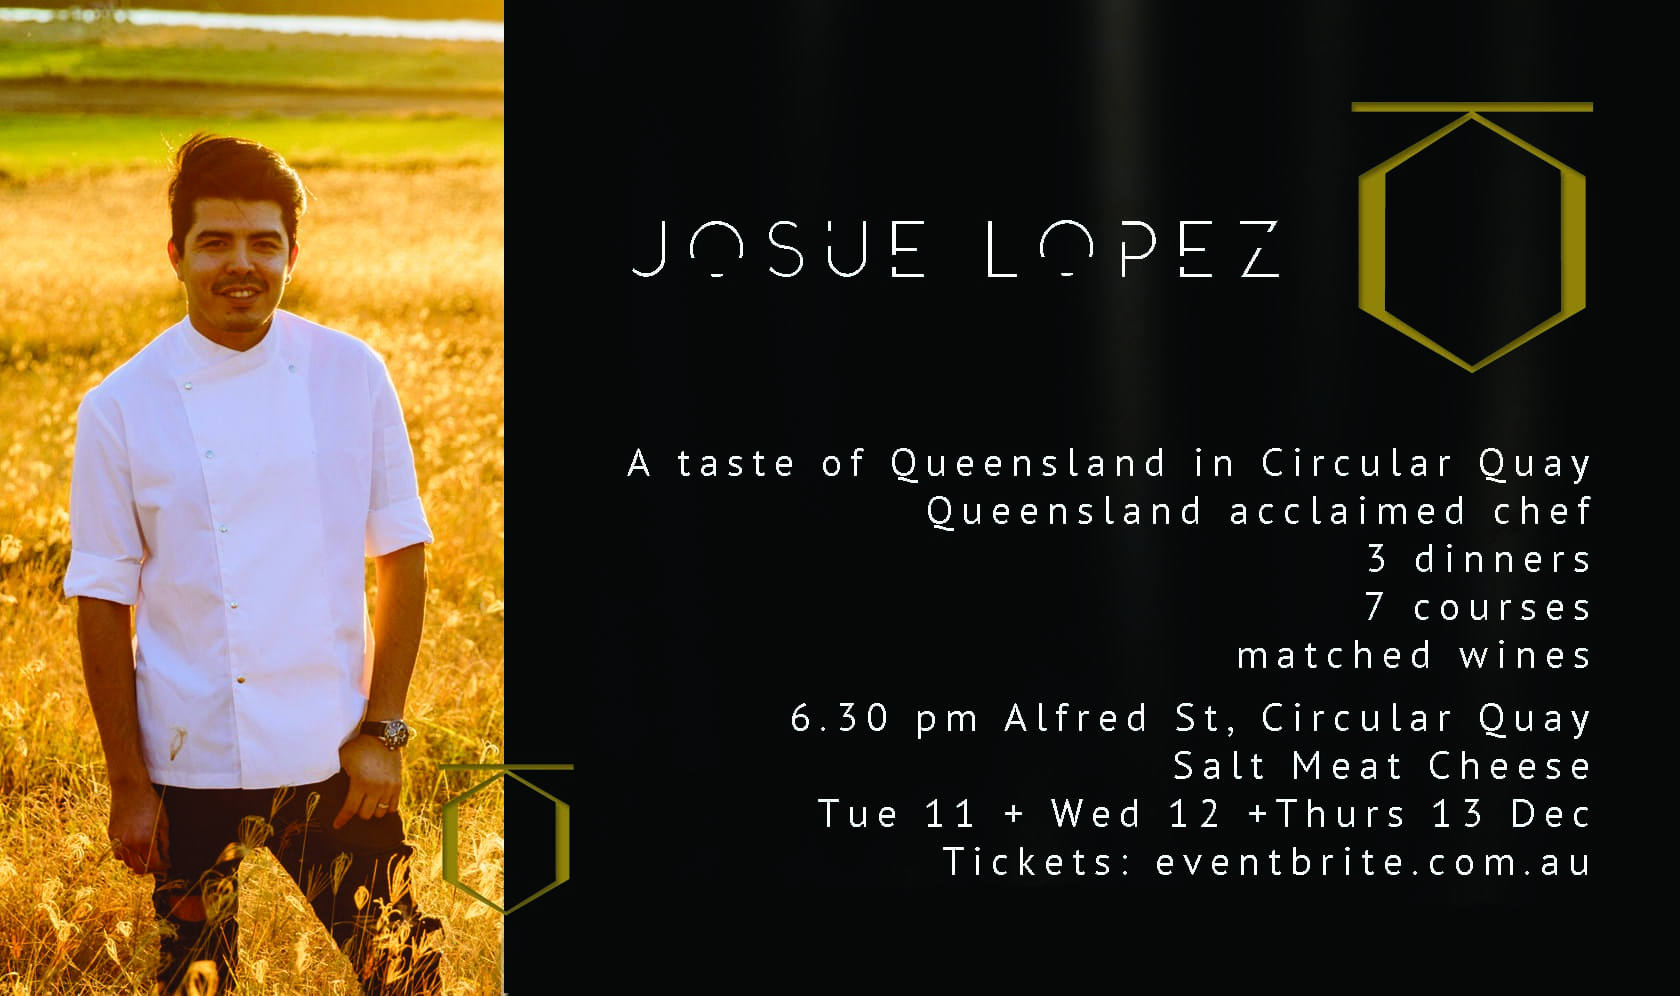 Josue Lopez at Circular Quay